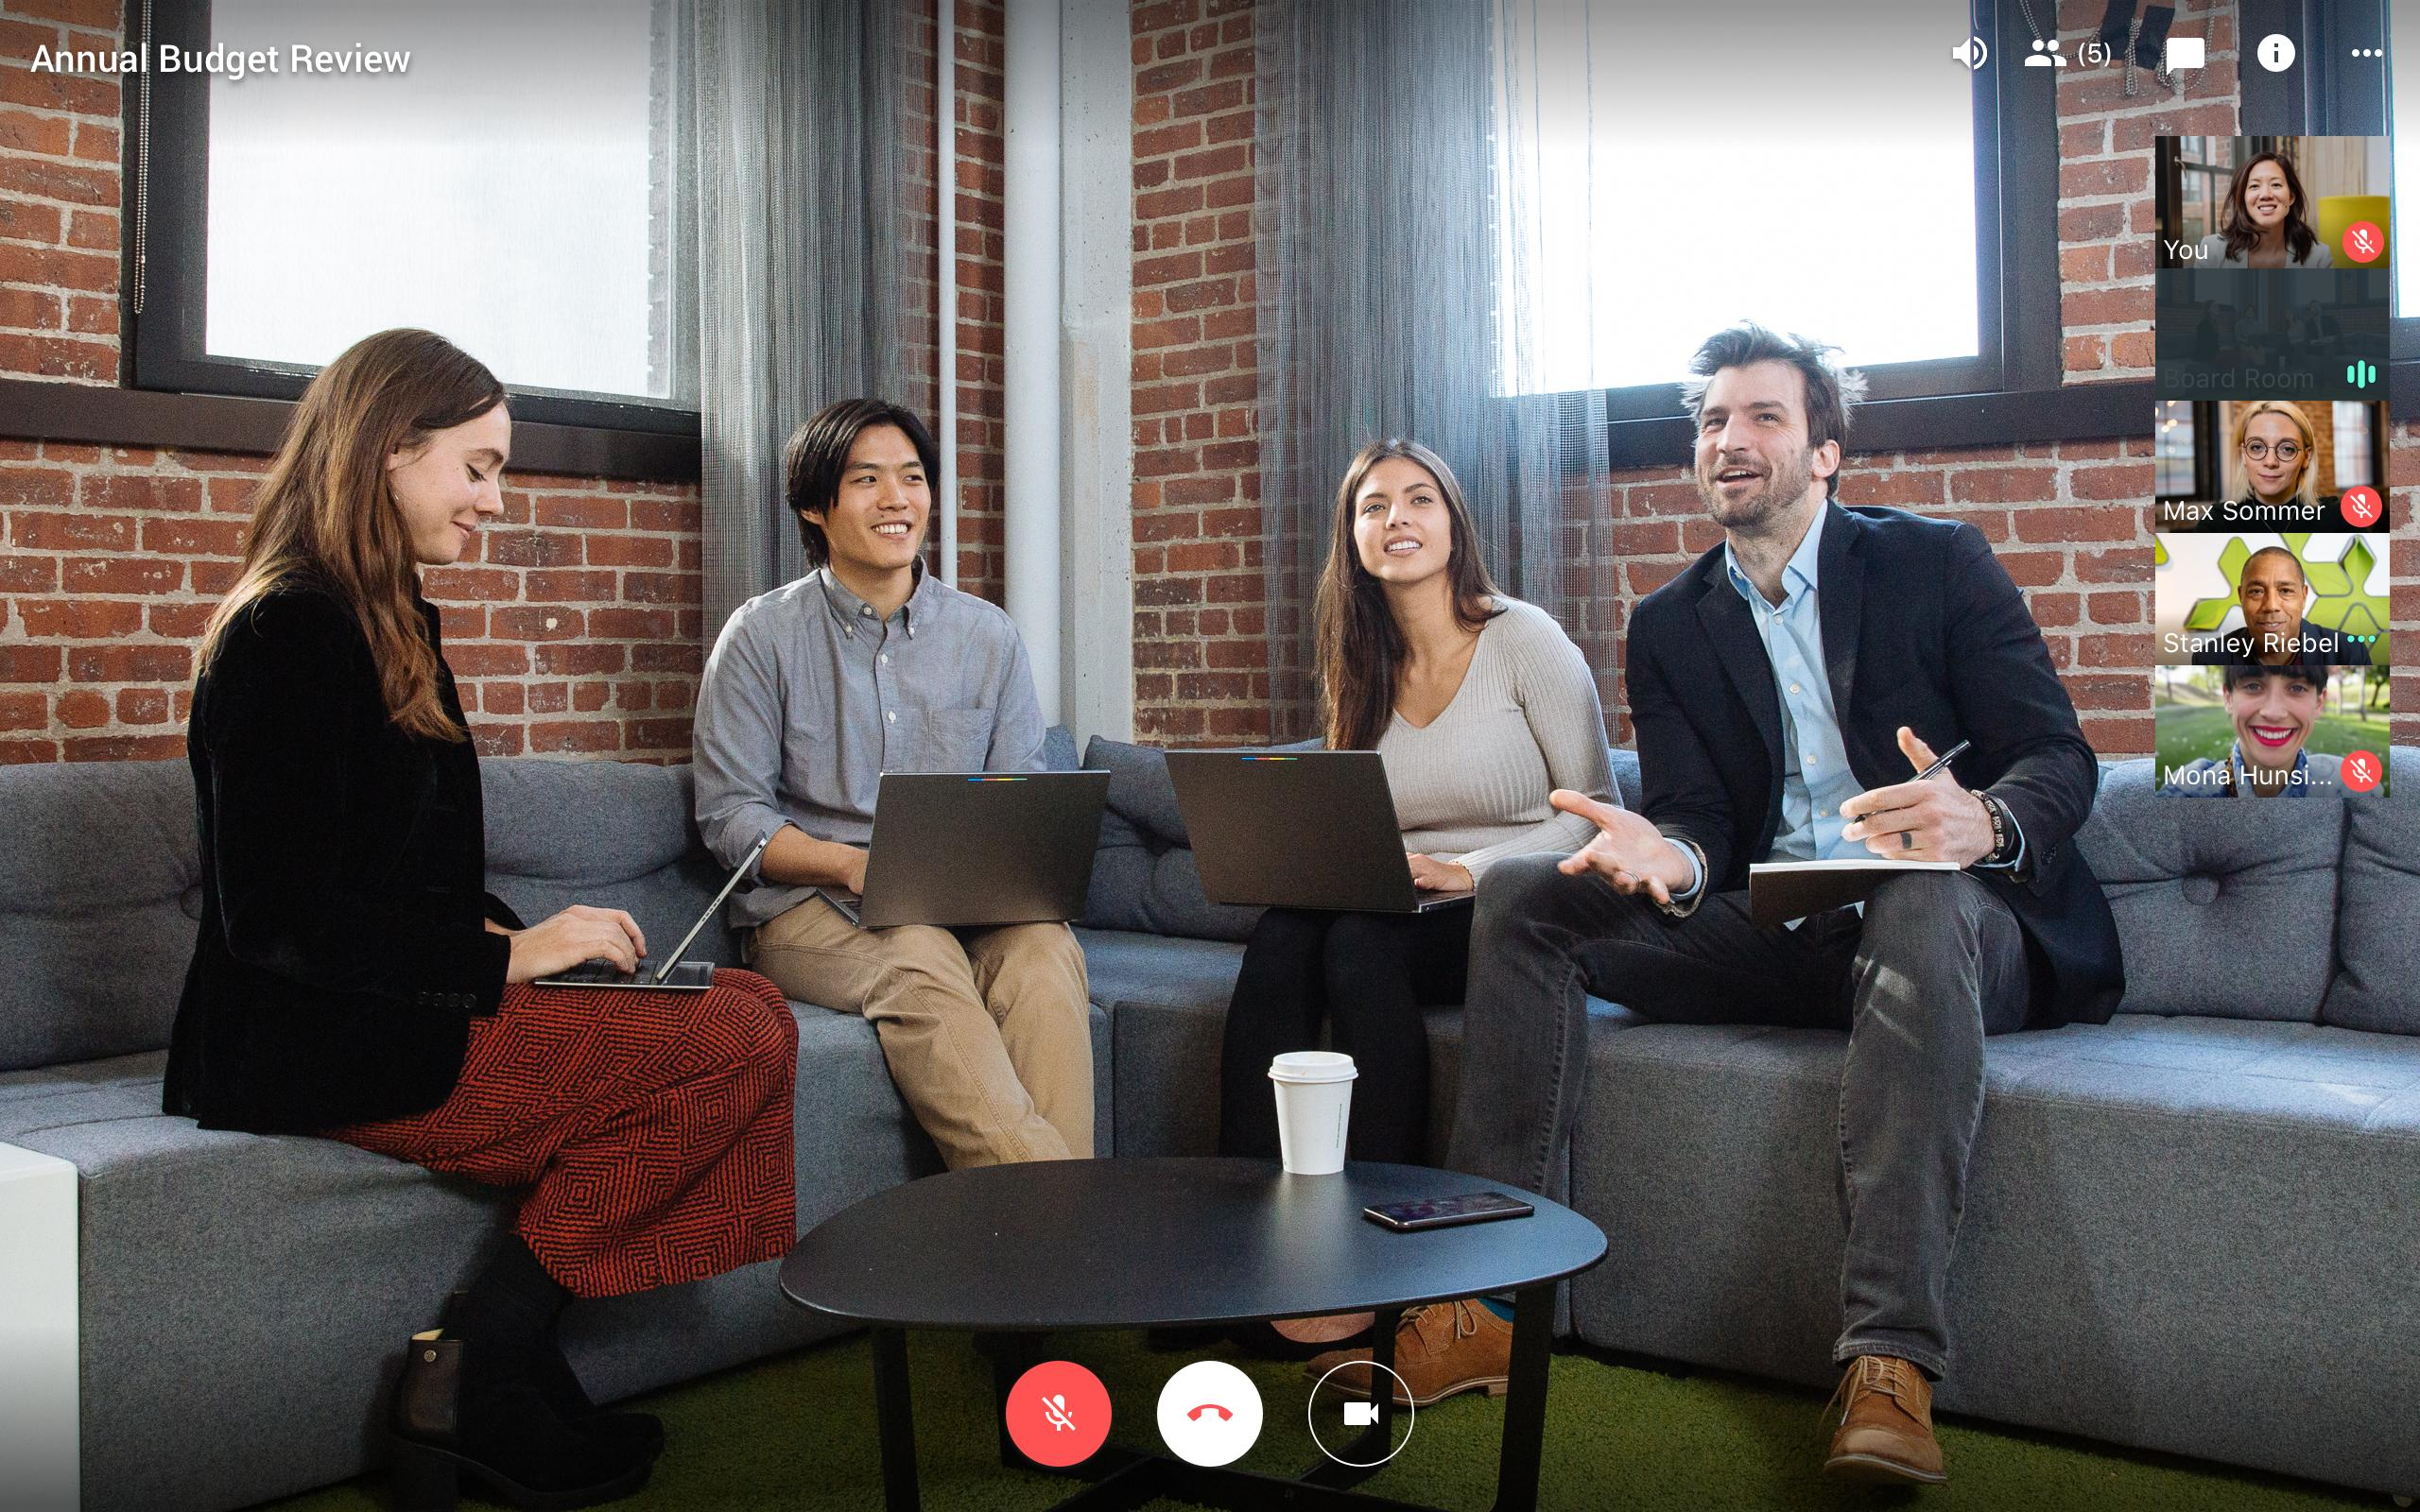 Hangouts Meet for Android - APK Download